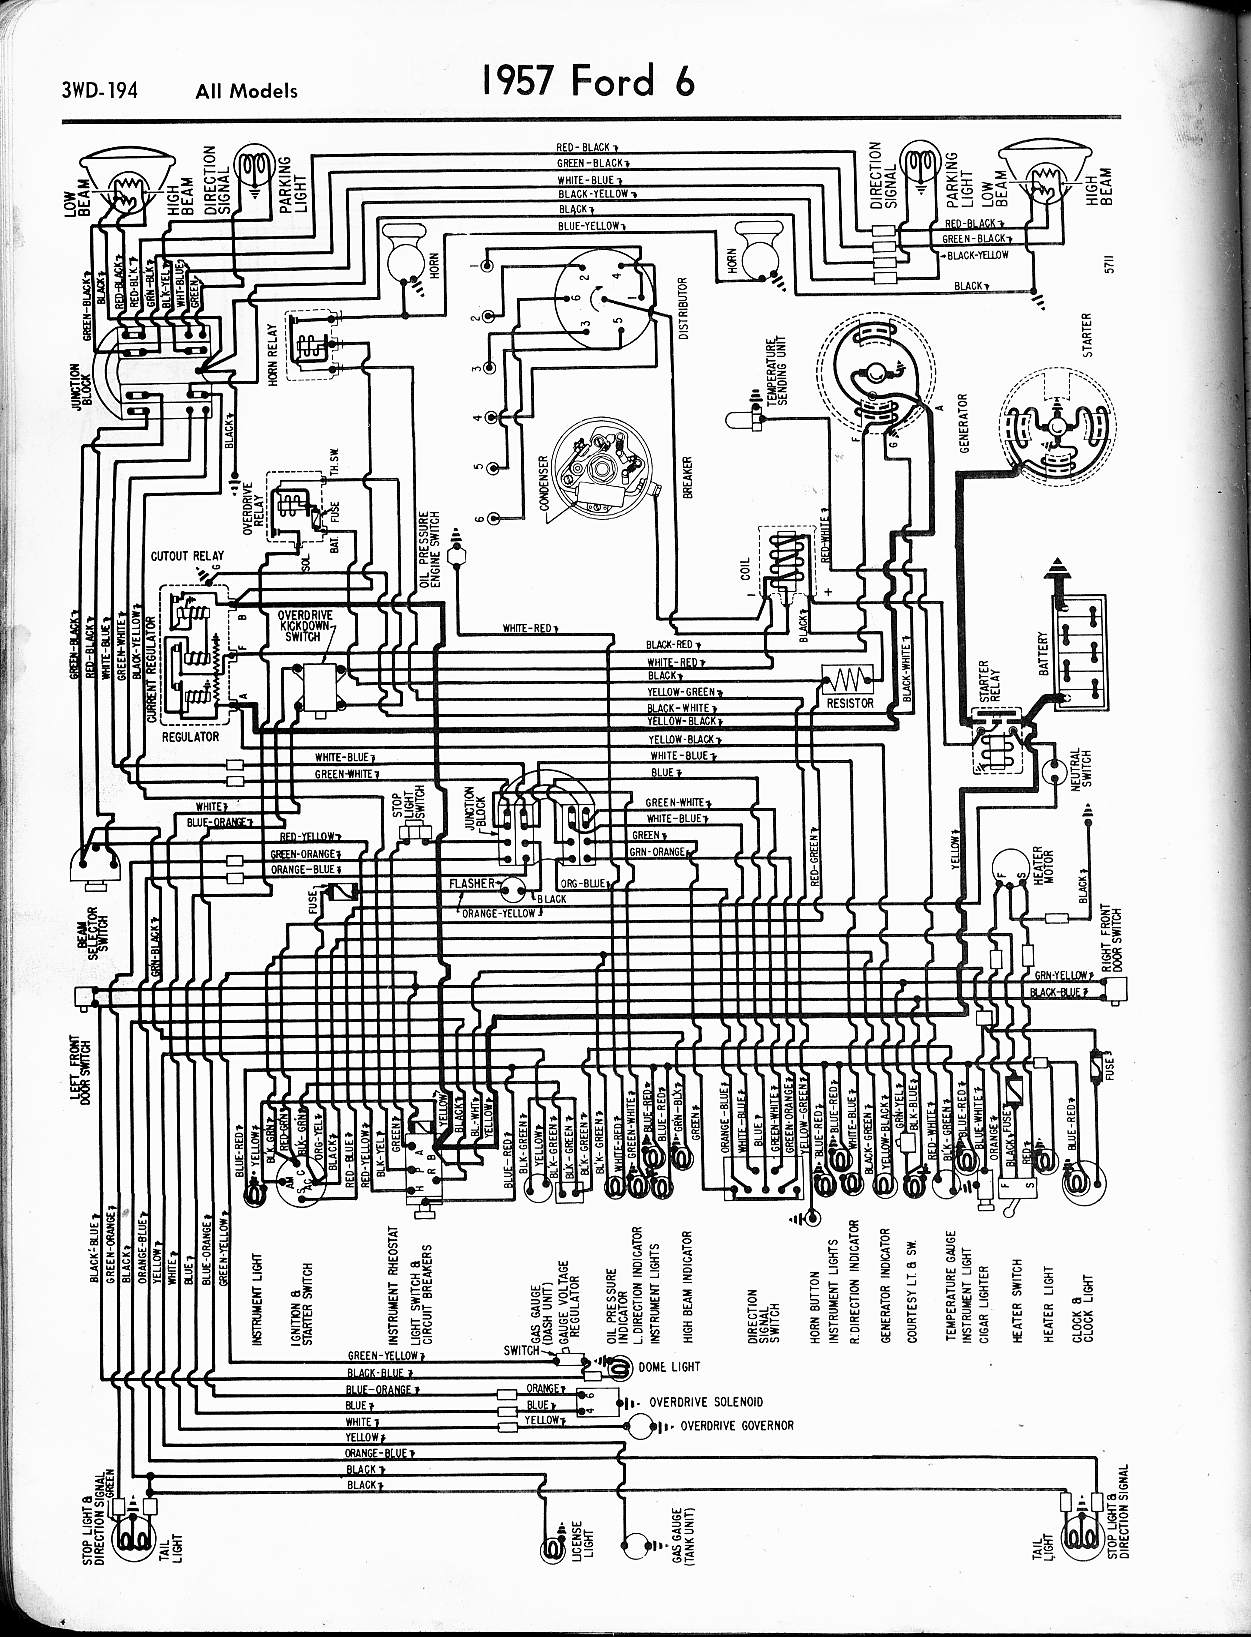 1968 Ford F 250 Truck Dist Wiring Diagram Library 1950 Chevy Pickup Index Of Diagrams For 1957 1965 6 Cyl All Models